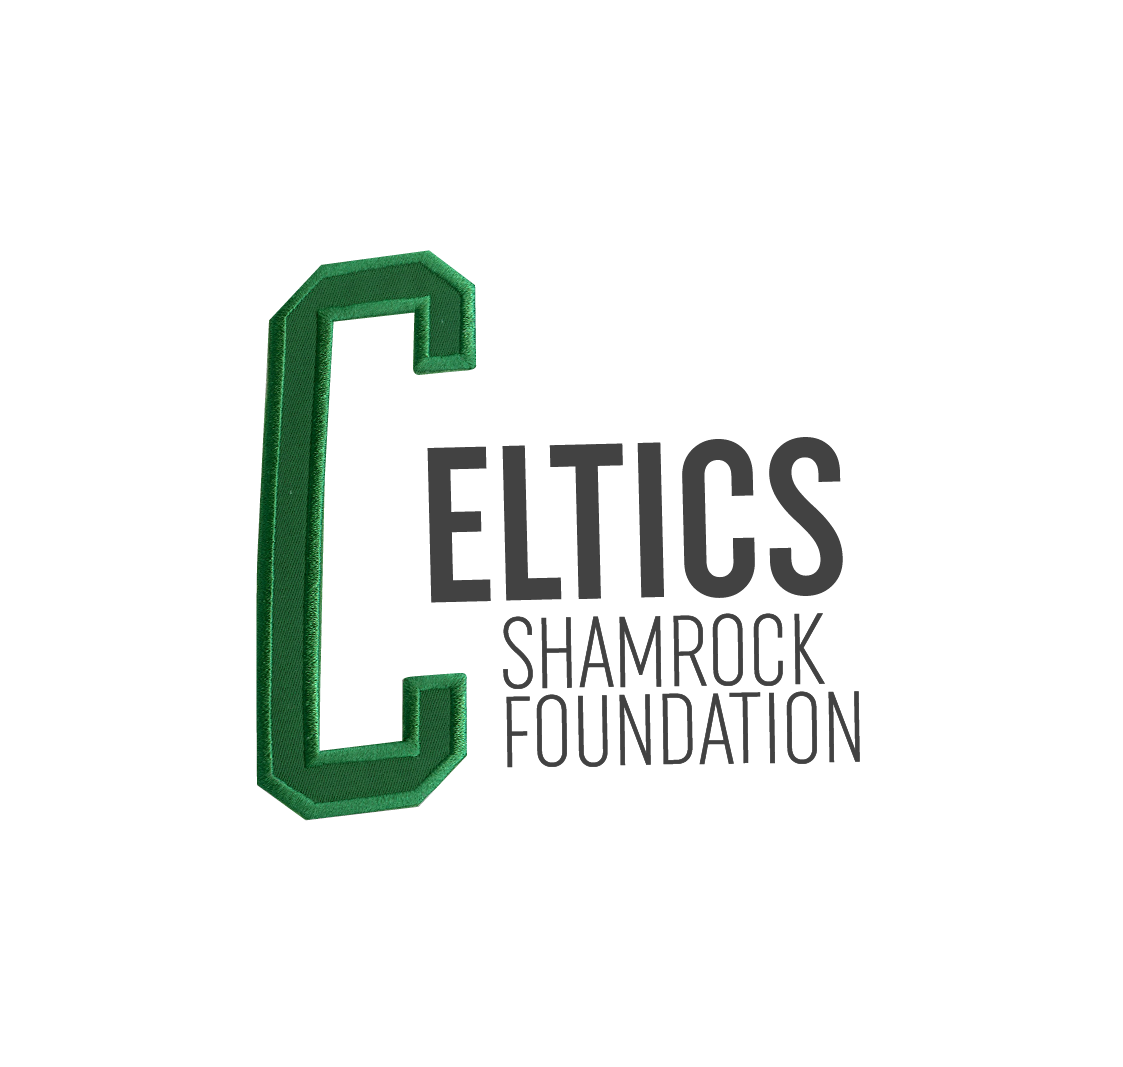 Boston Celtics Shamrock Foundation logo